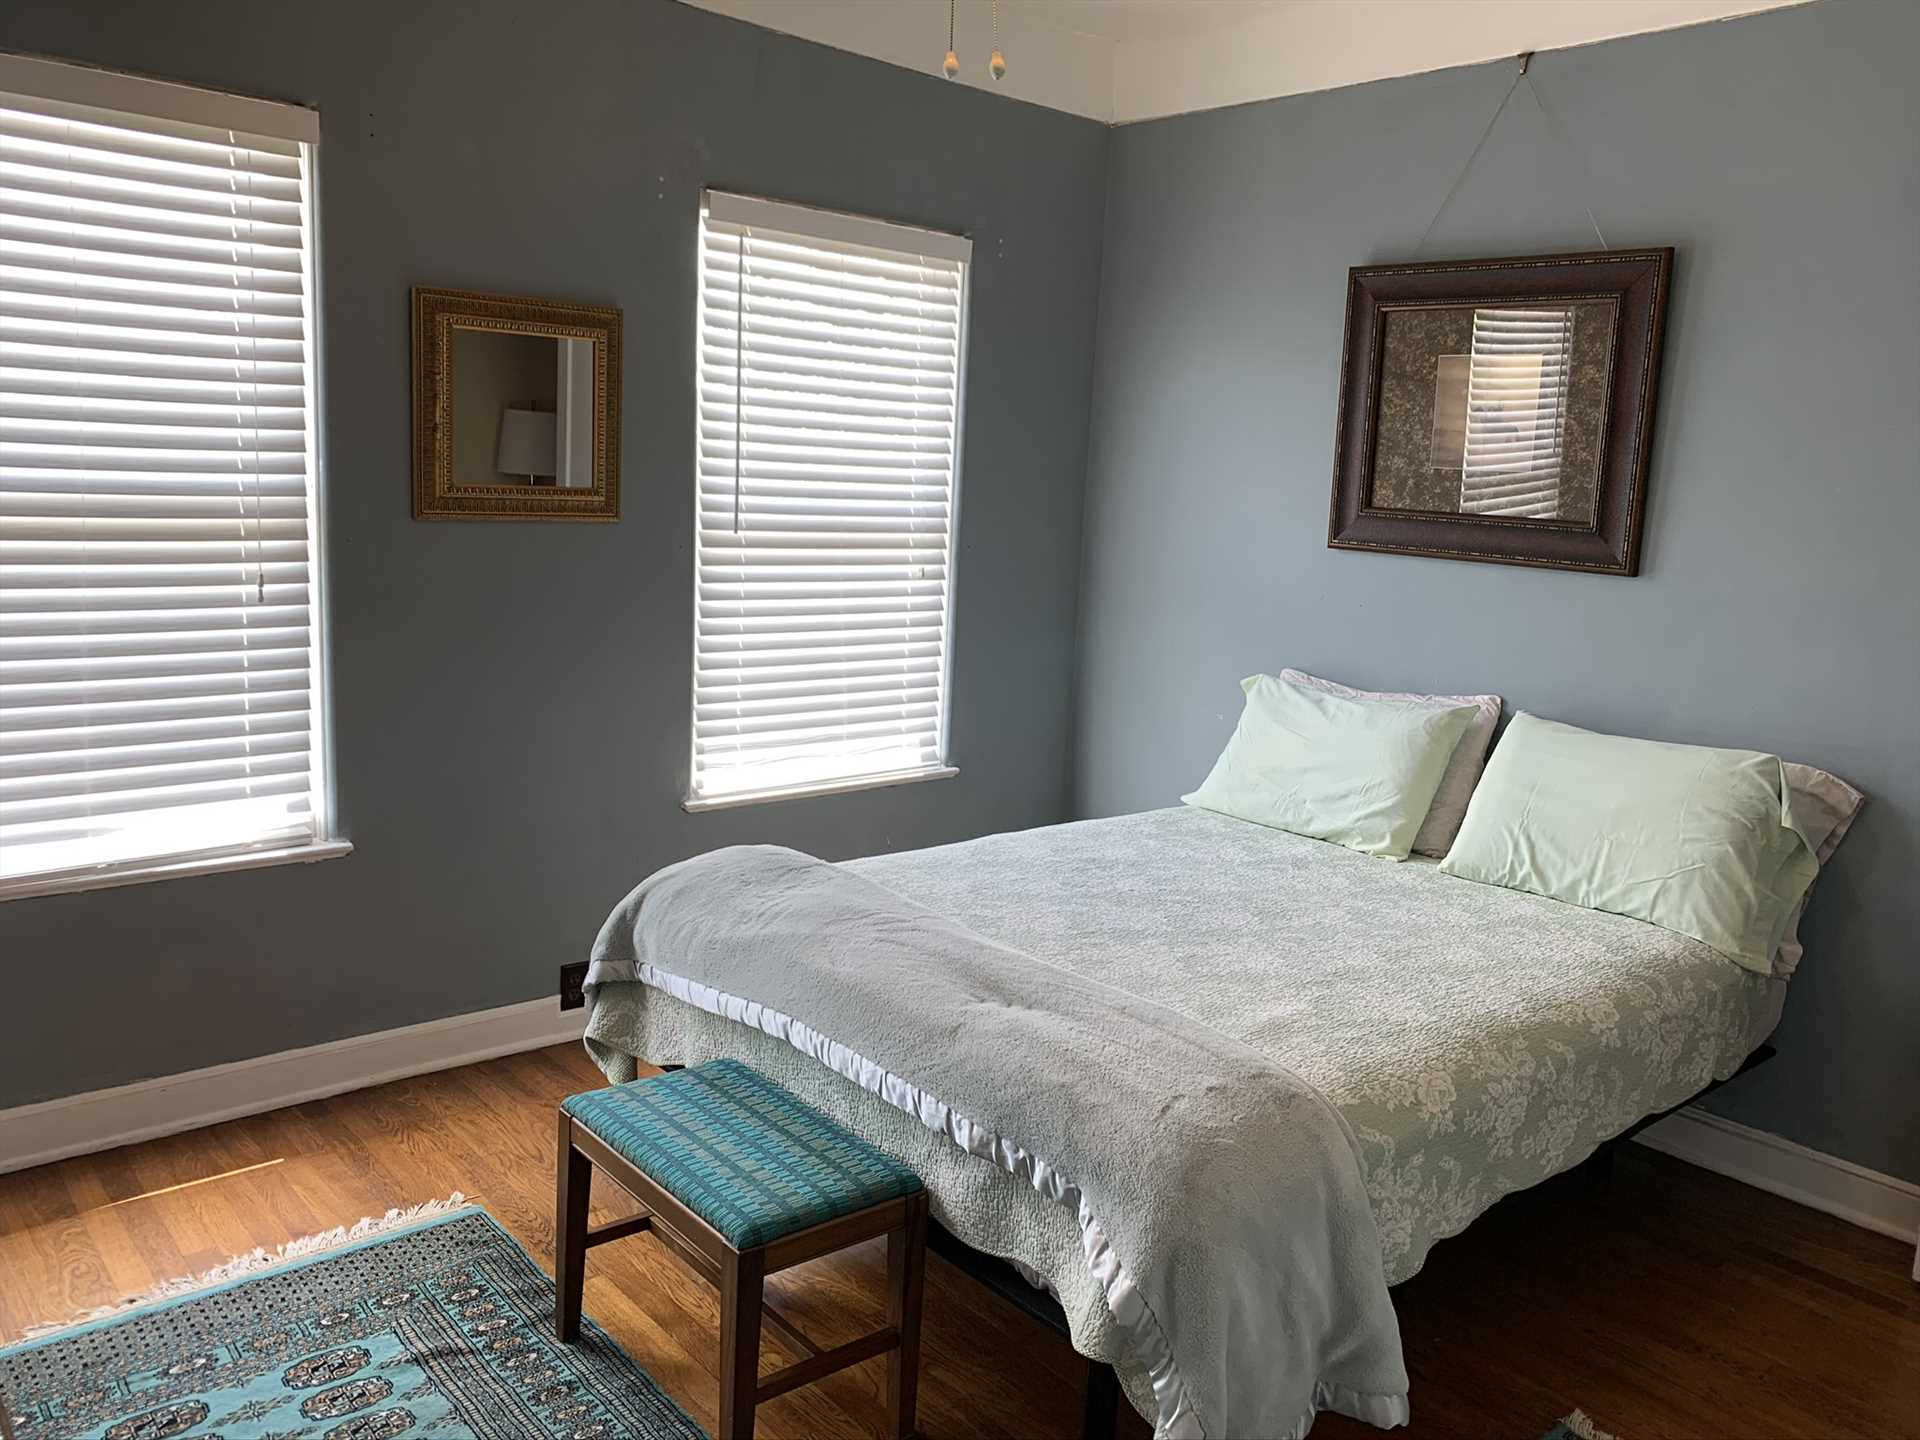 The second bedroom is immediately adjacent to the master, and features a warm and soft double bed. Clean bed and bath linens are provided for everyone, too!